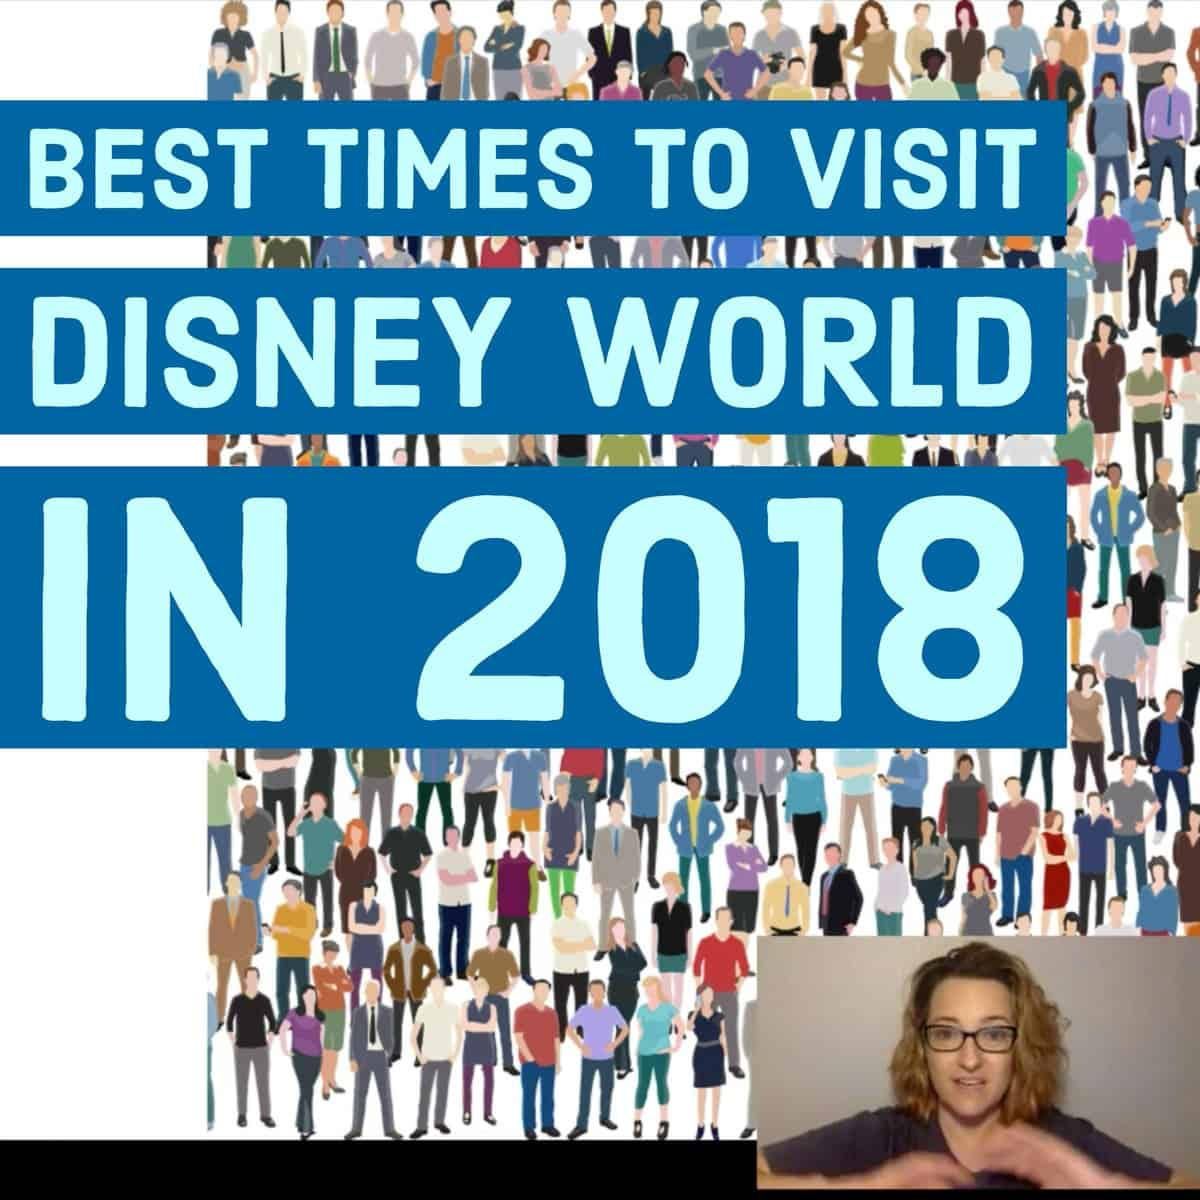 Best Times to visit Disney World in 2018